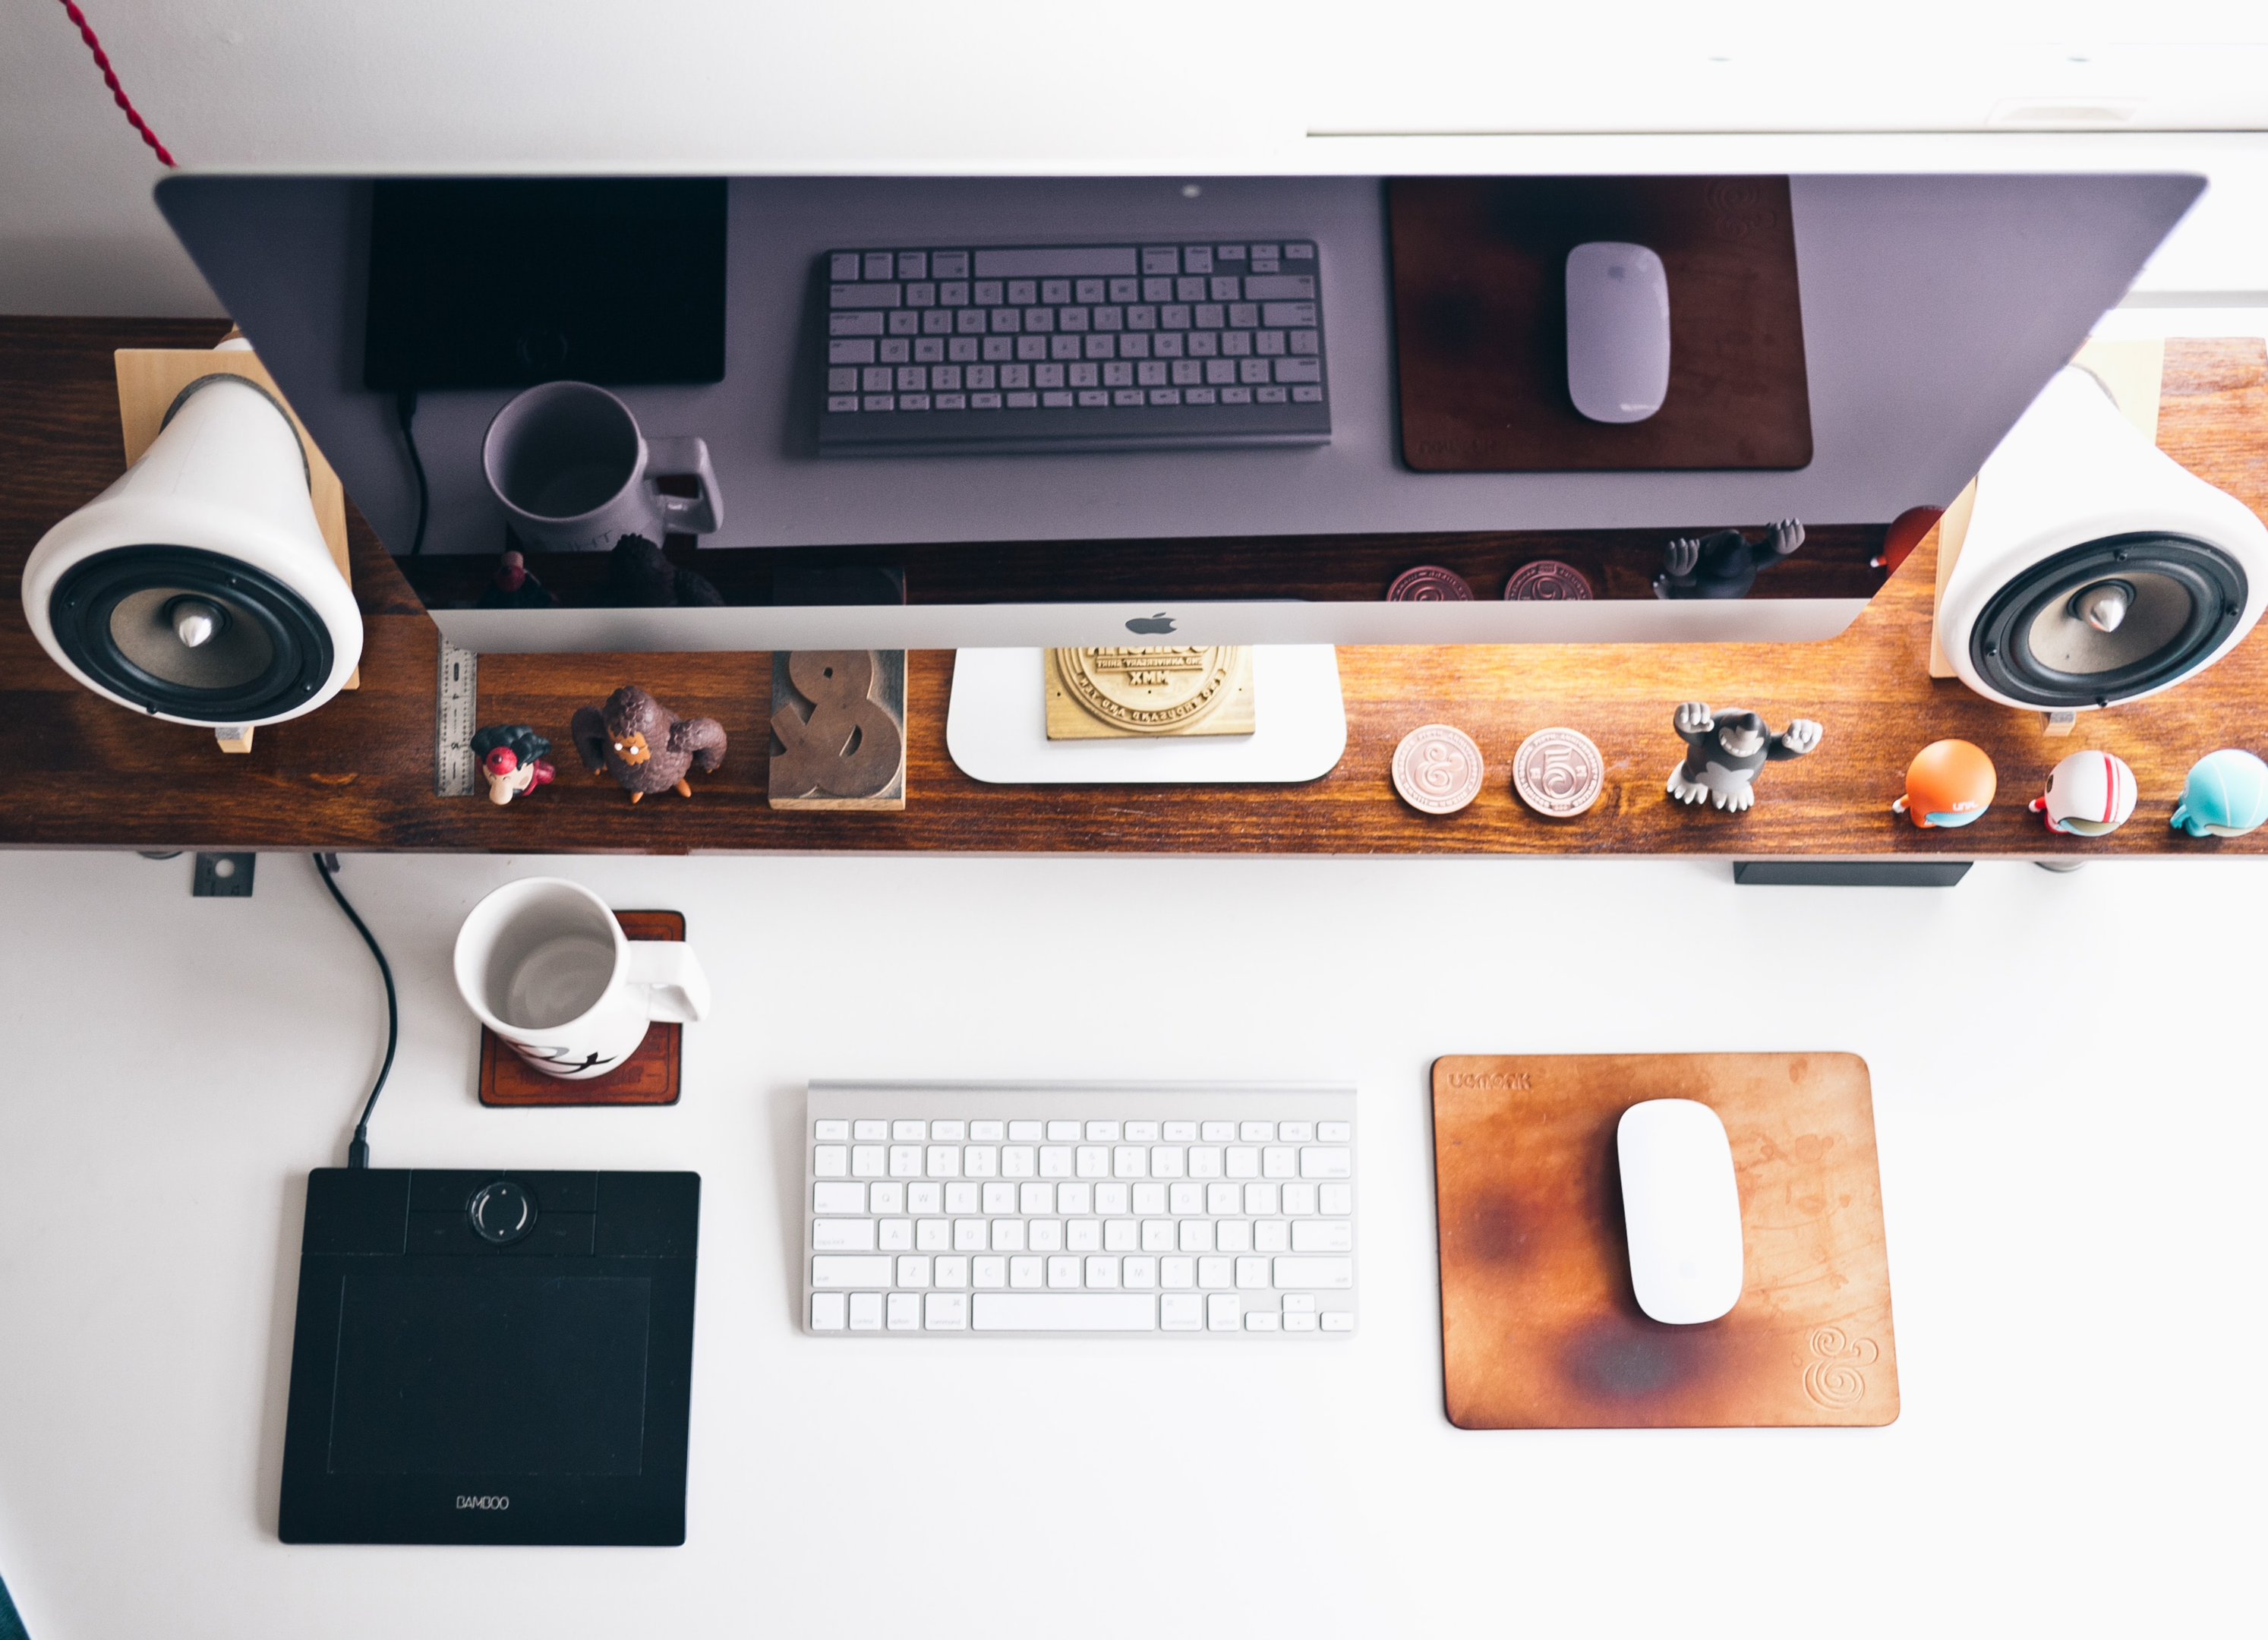 A workspace that portrays cutting-edge software engineering technology